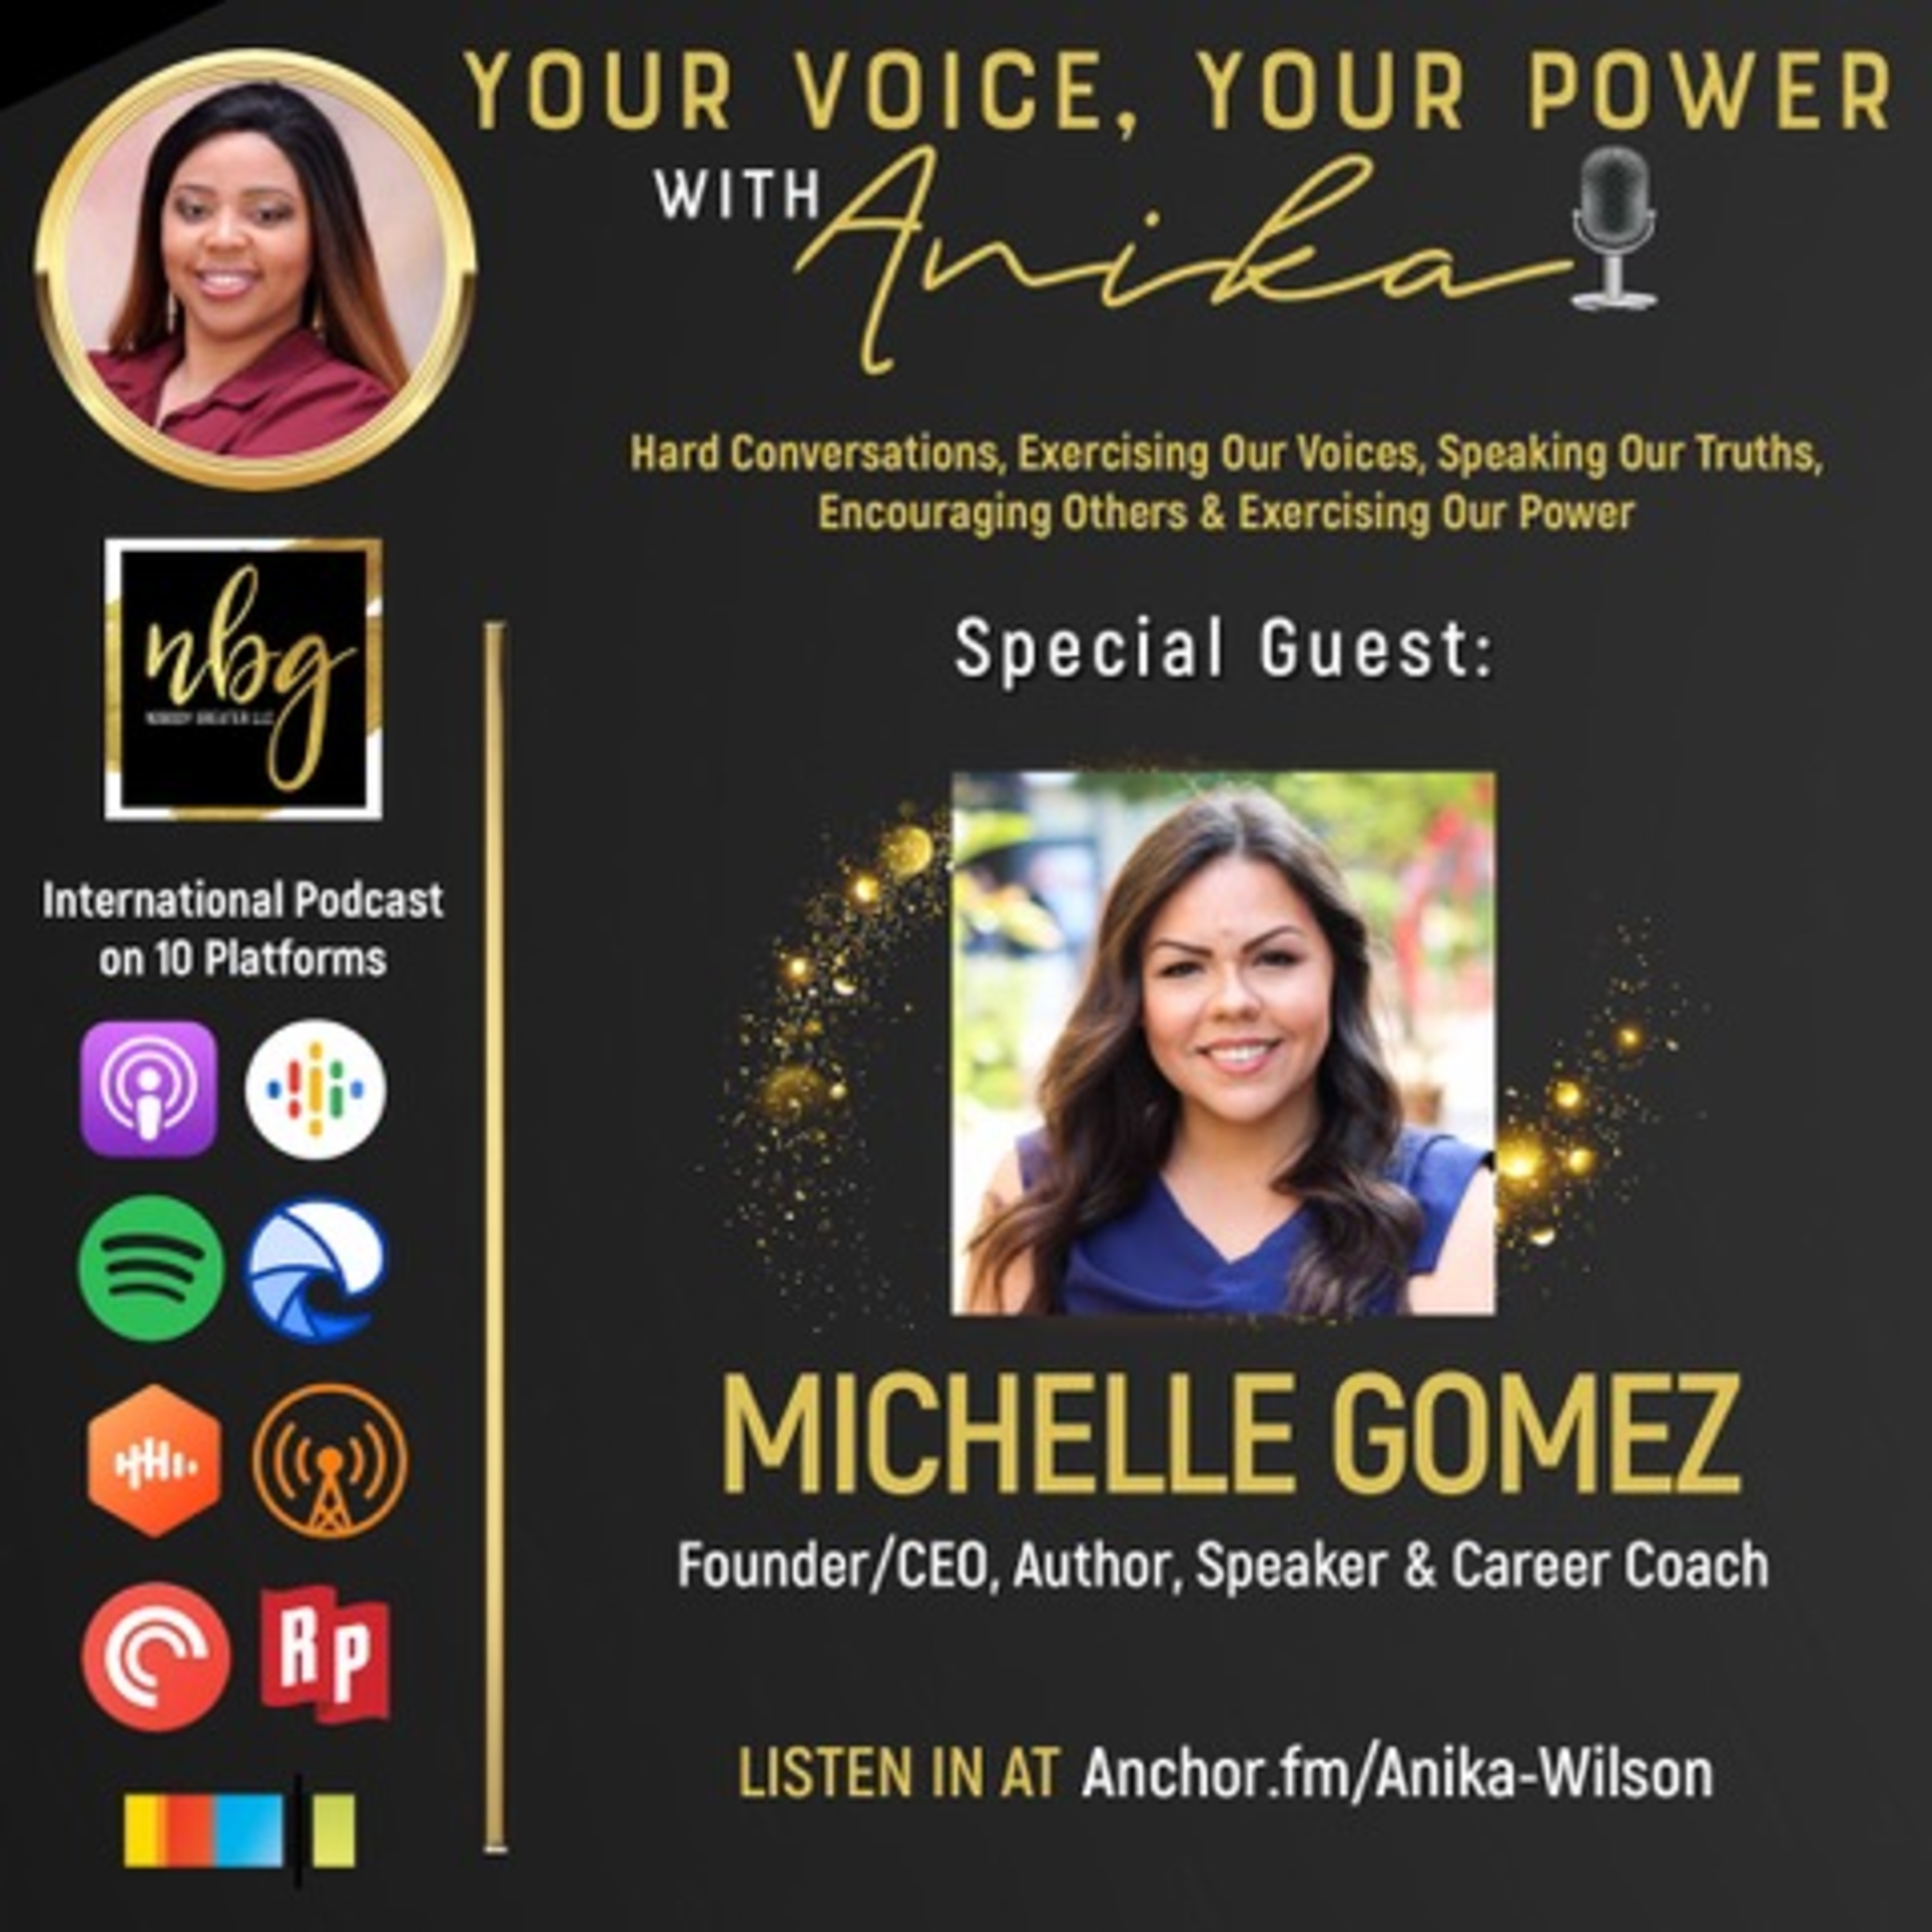 Career Coaching and So much more with Michelle Gomez